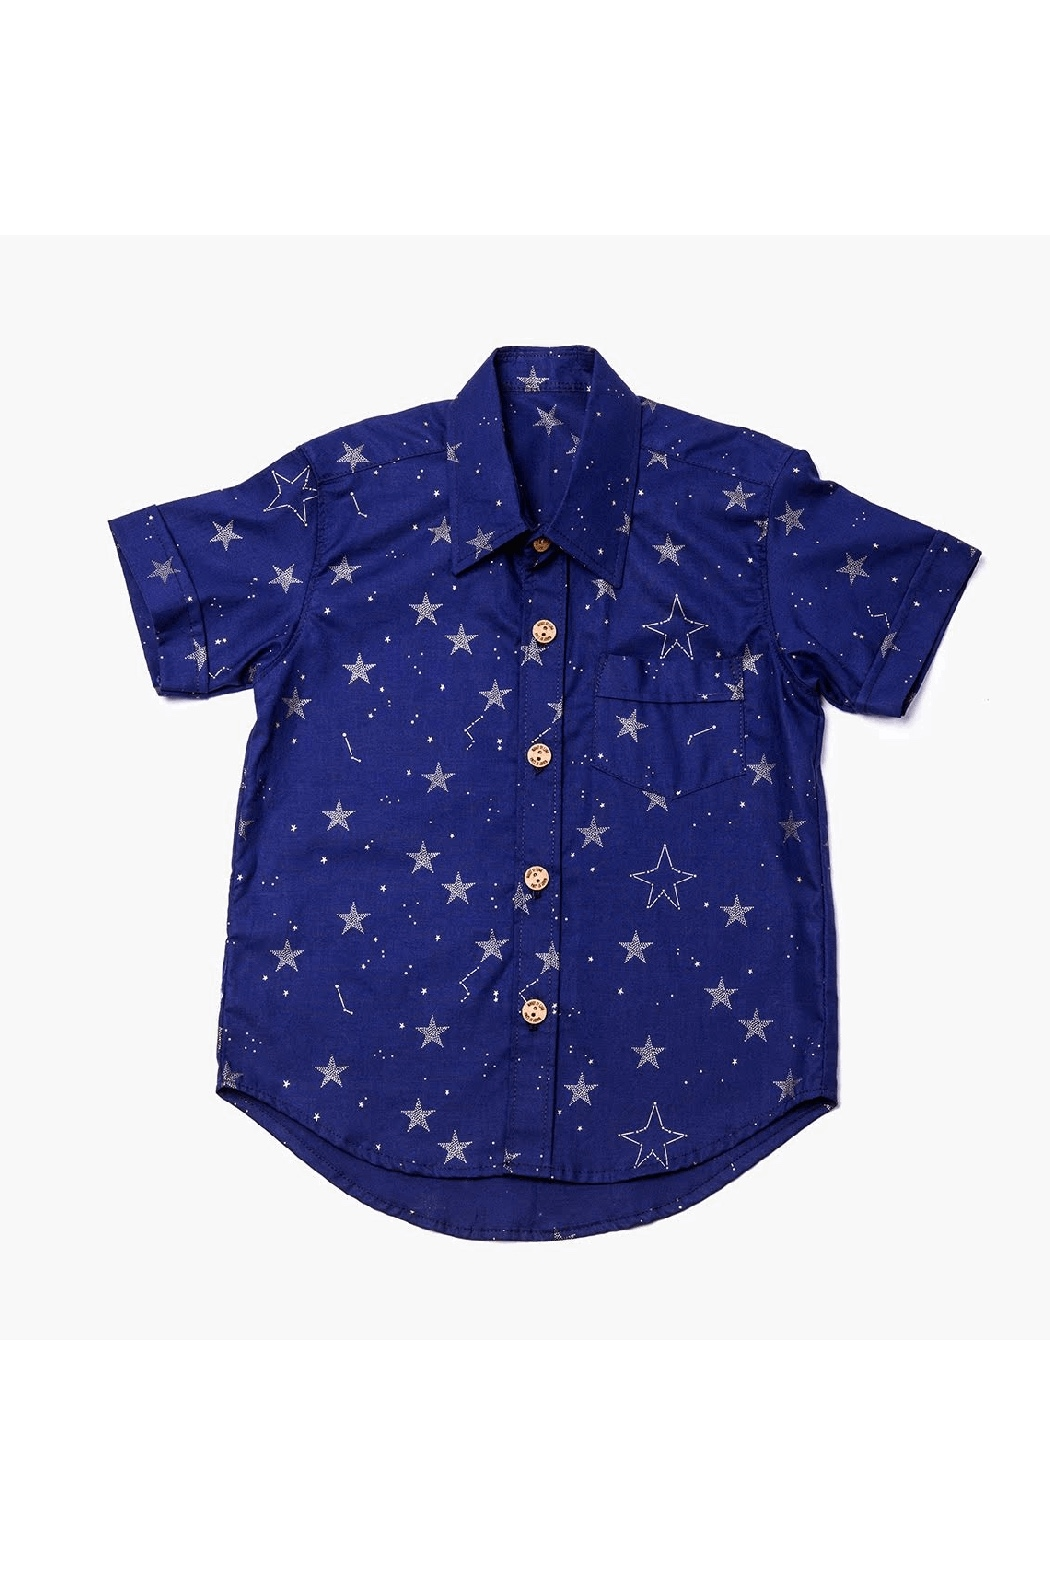 Mandy by Gema Lucky Stars Navy Shirt - Main Image